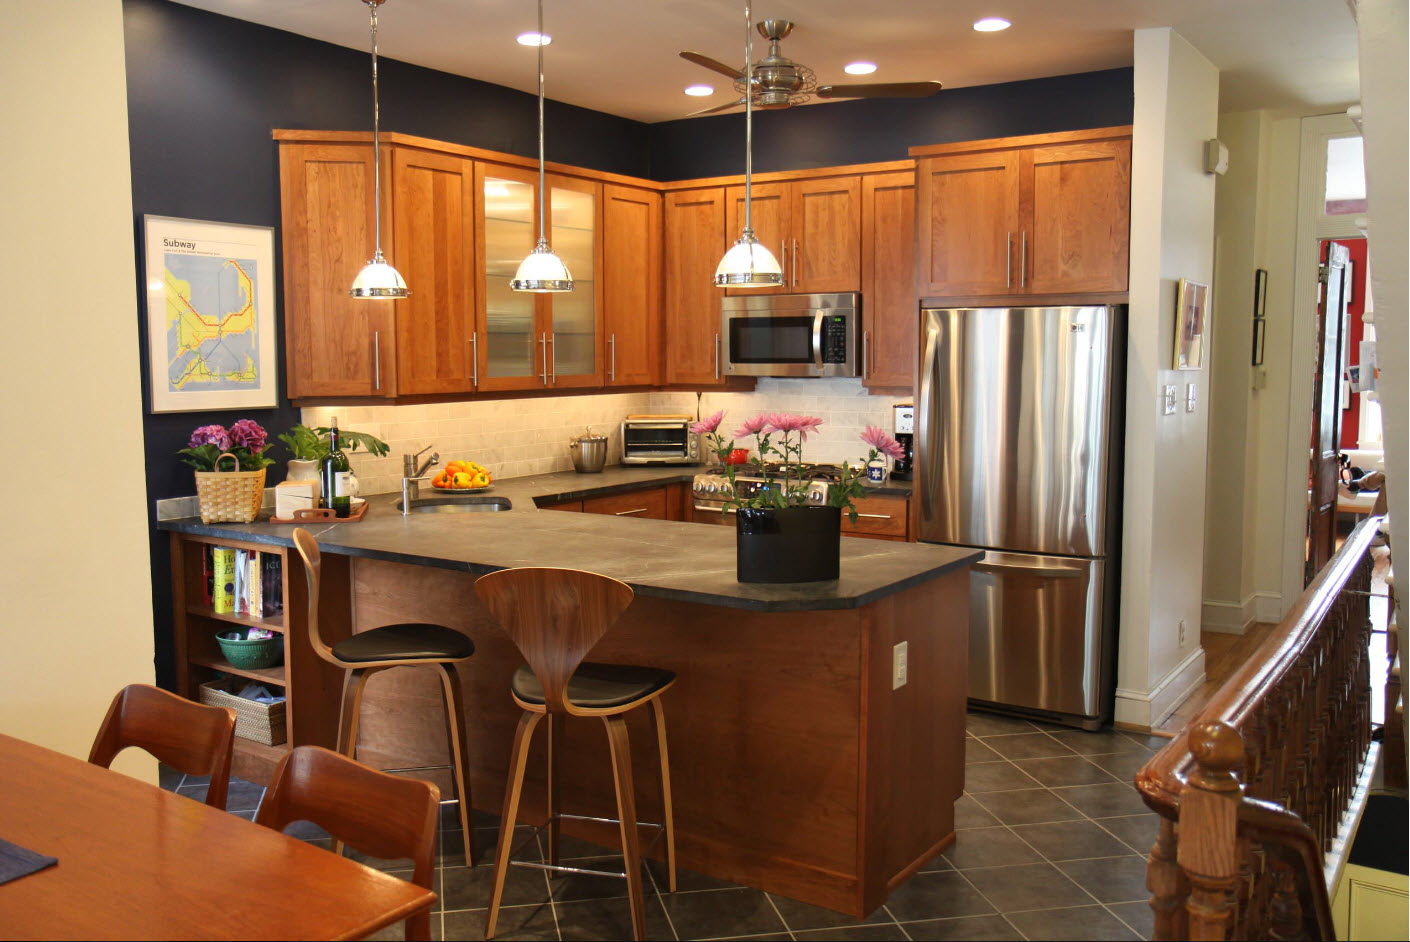 Angular Kitchen Layout Design Ideas 2017. Dark noble wooden materials to trim the classic styled space